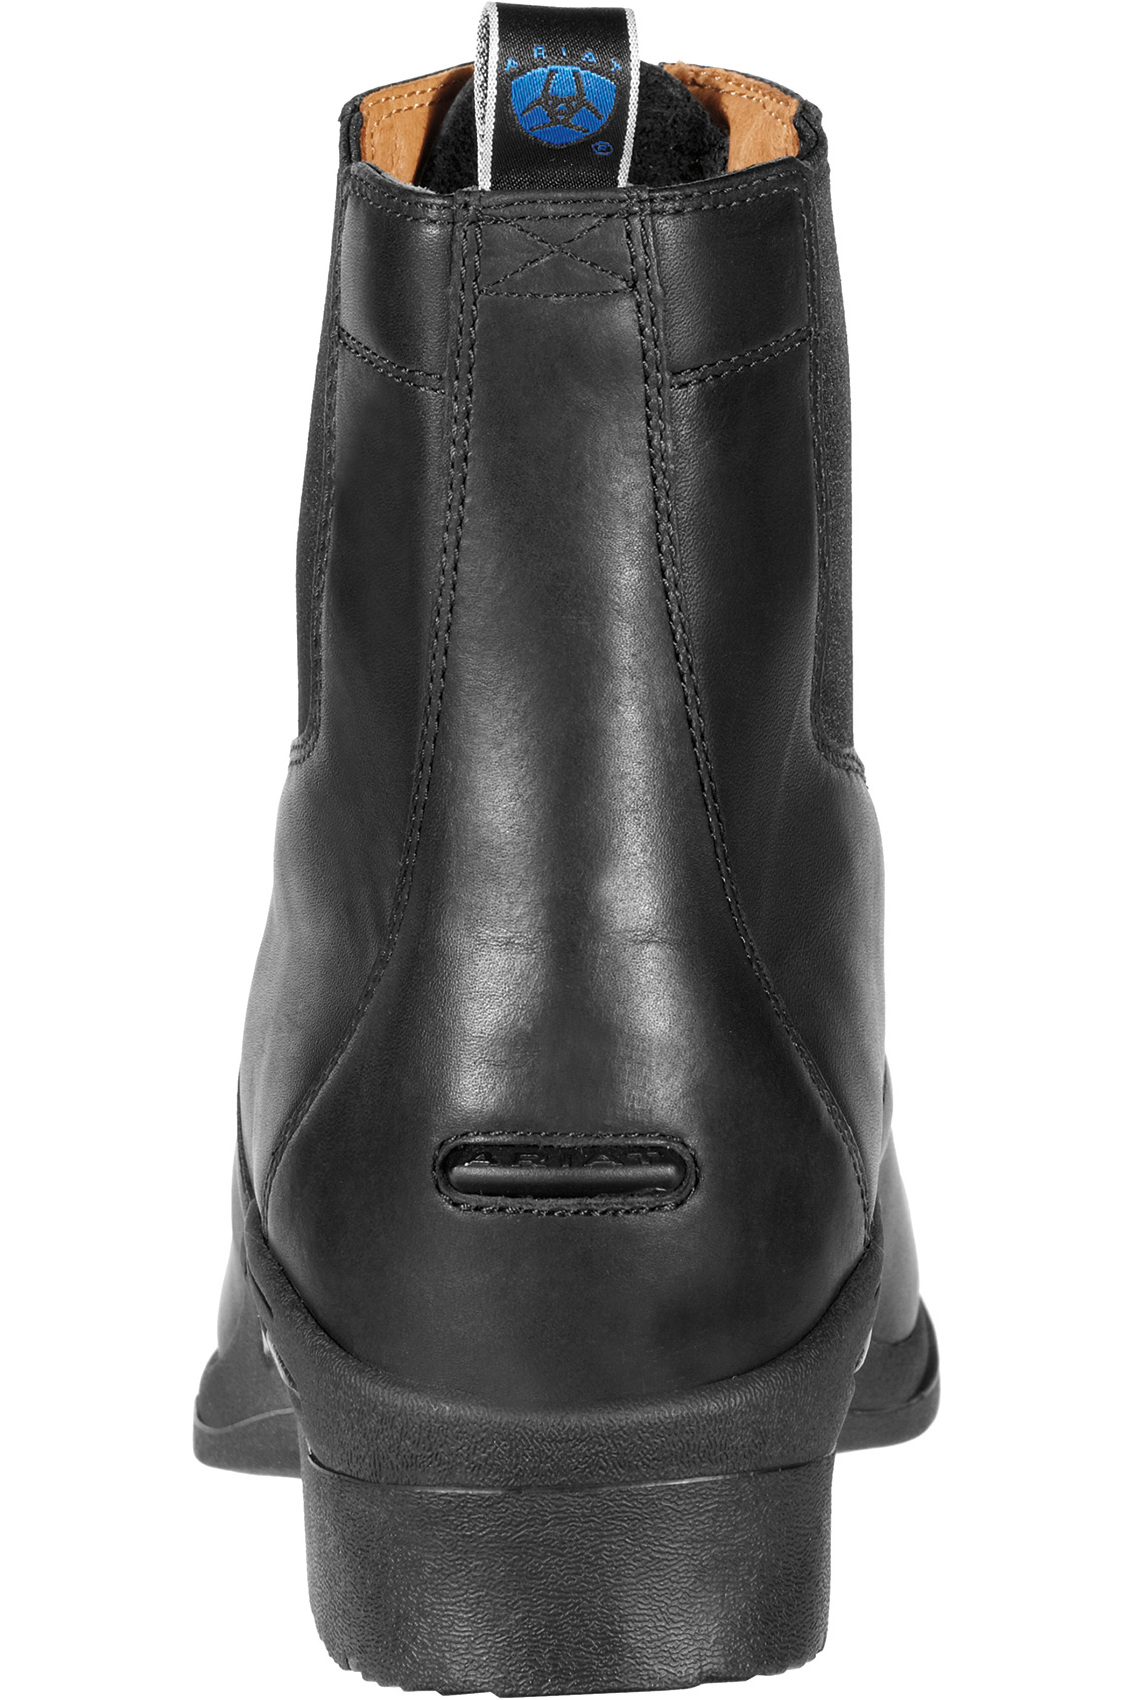 Ariat Devon Pro VX Short Riding Boots Black